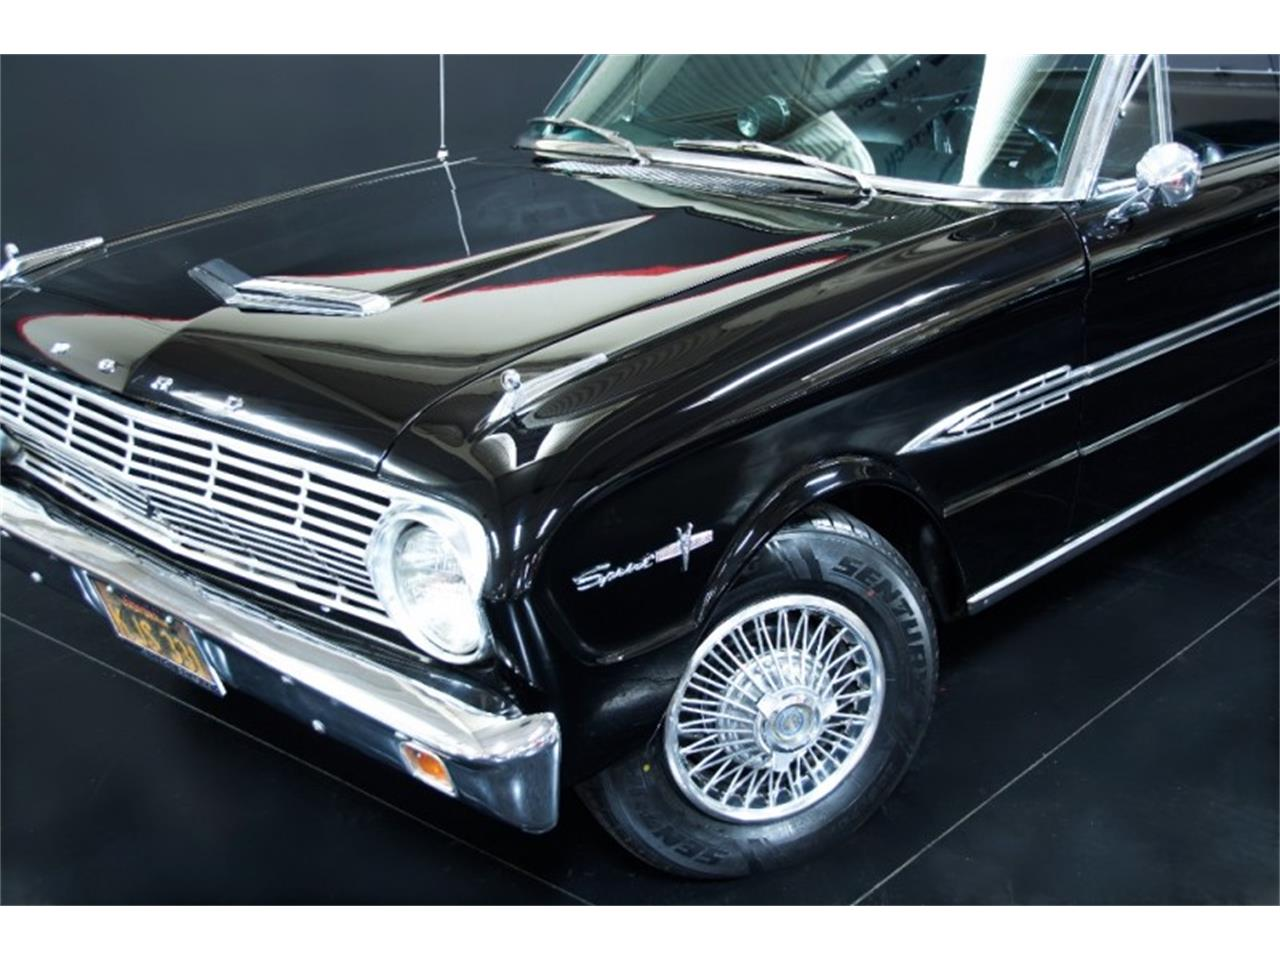 1963 Ford Falcon for sale in Milpitas, CA – photo 19